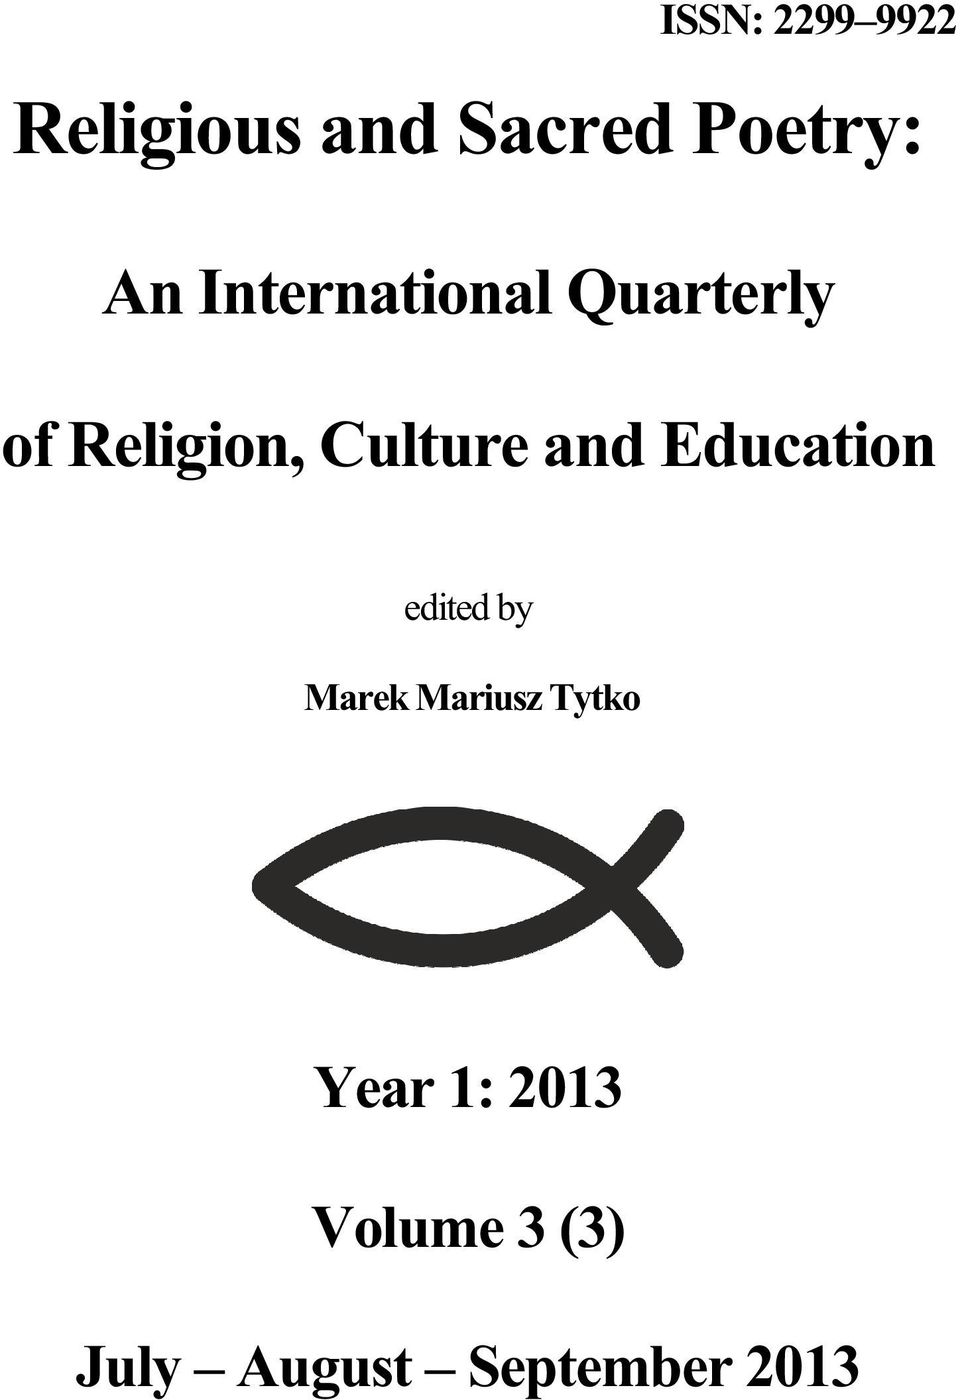 and Education edited by Marek Mariusz Tytko